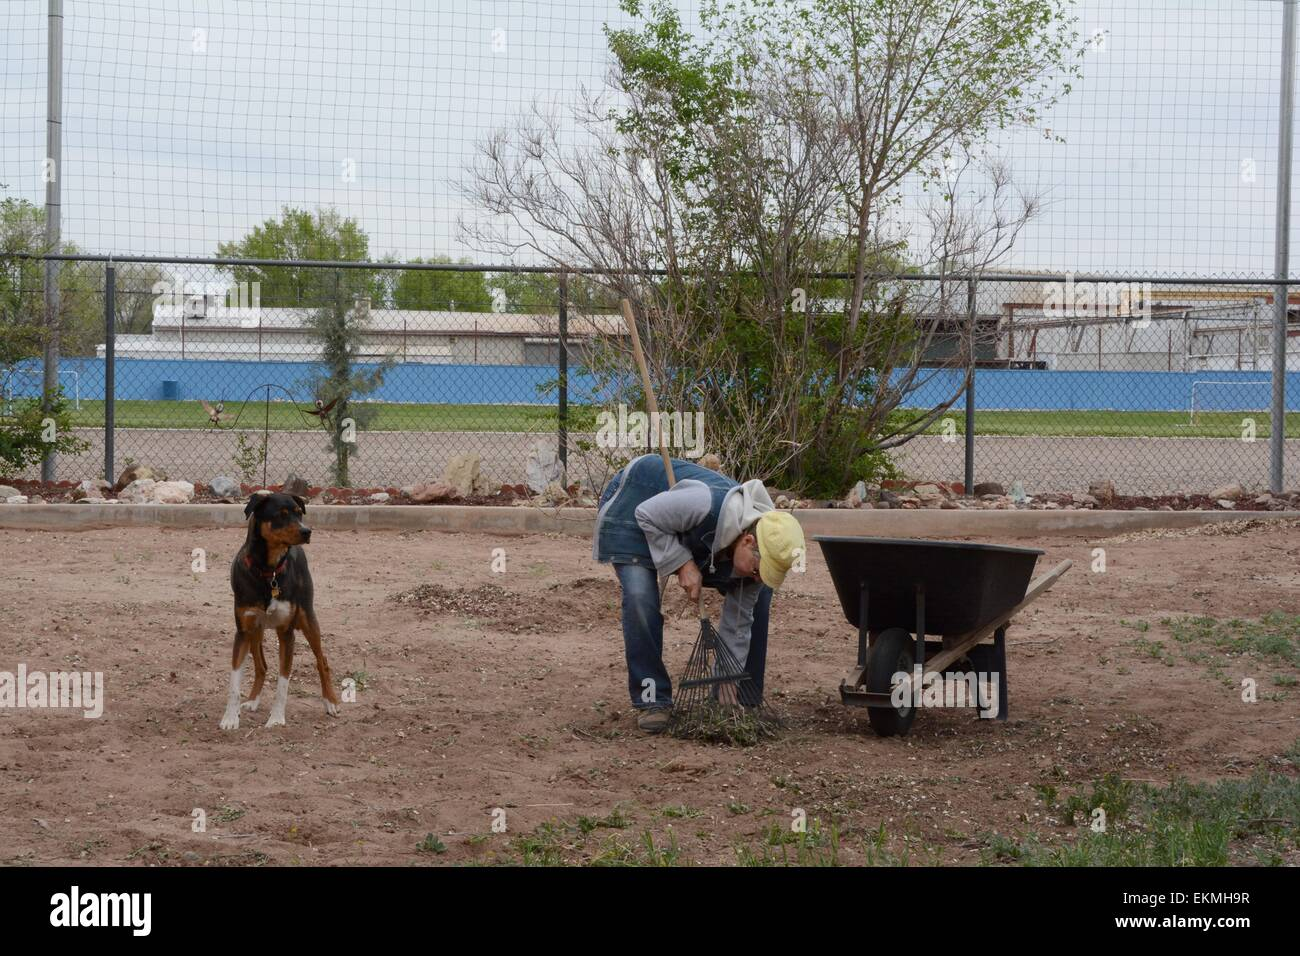 Yard work using a rake and wheelbarrow - USA - Stock Image